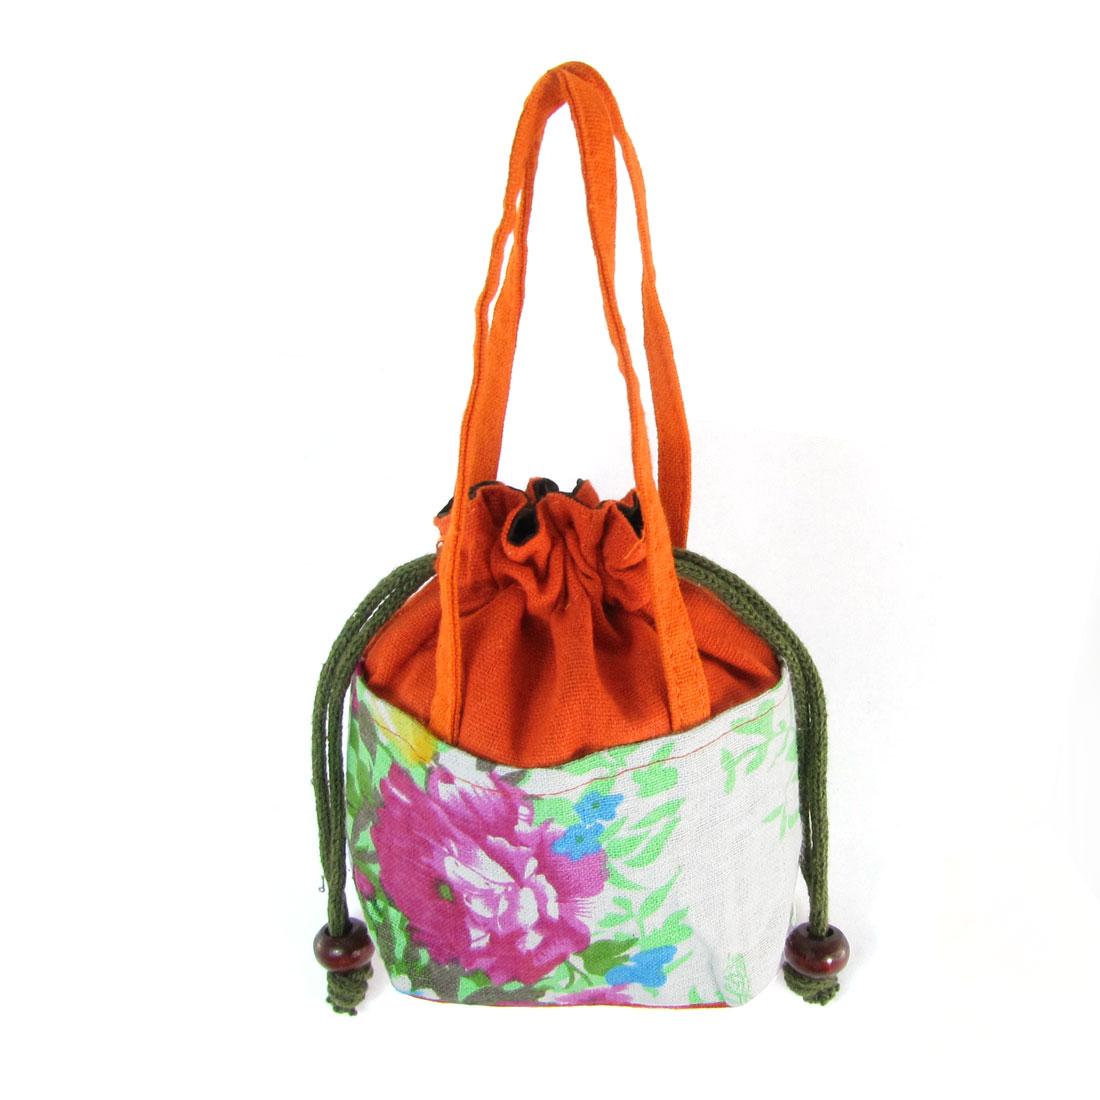 Lady Colorful Floral Pattern Nylon Lipstick Drawstring Tote Bag Purse